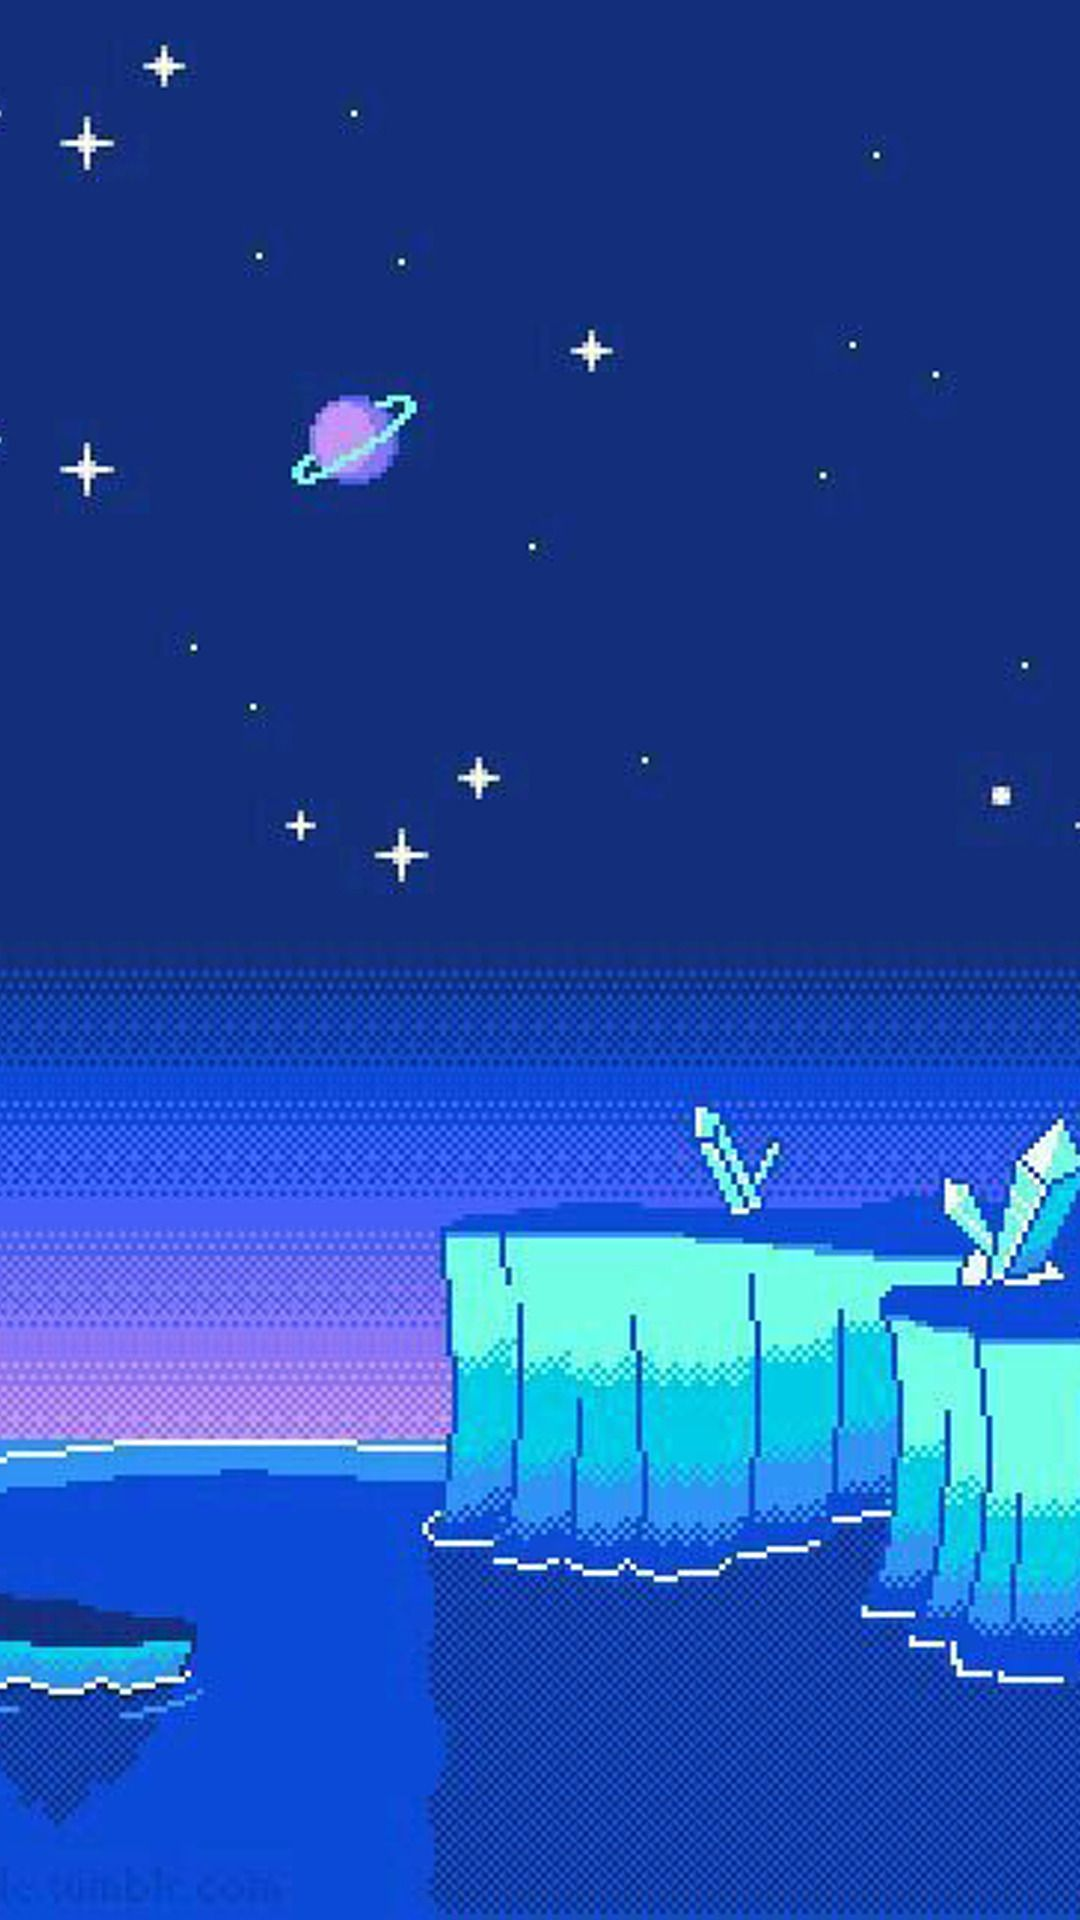 Pixel Art Wallpaper Tumblr Pixel Art Art Wallpaper Art